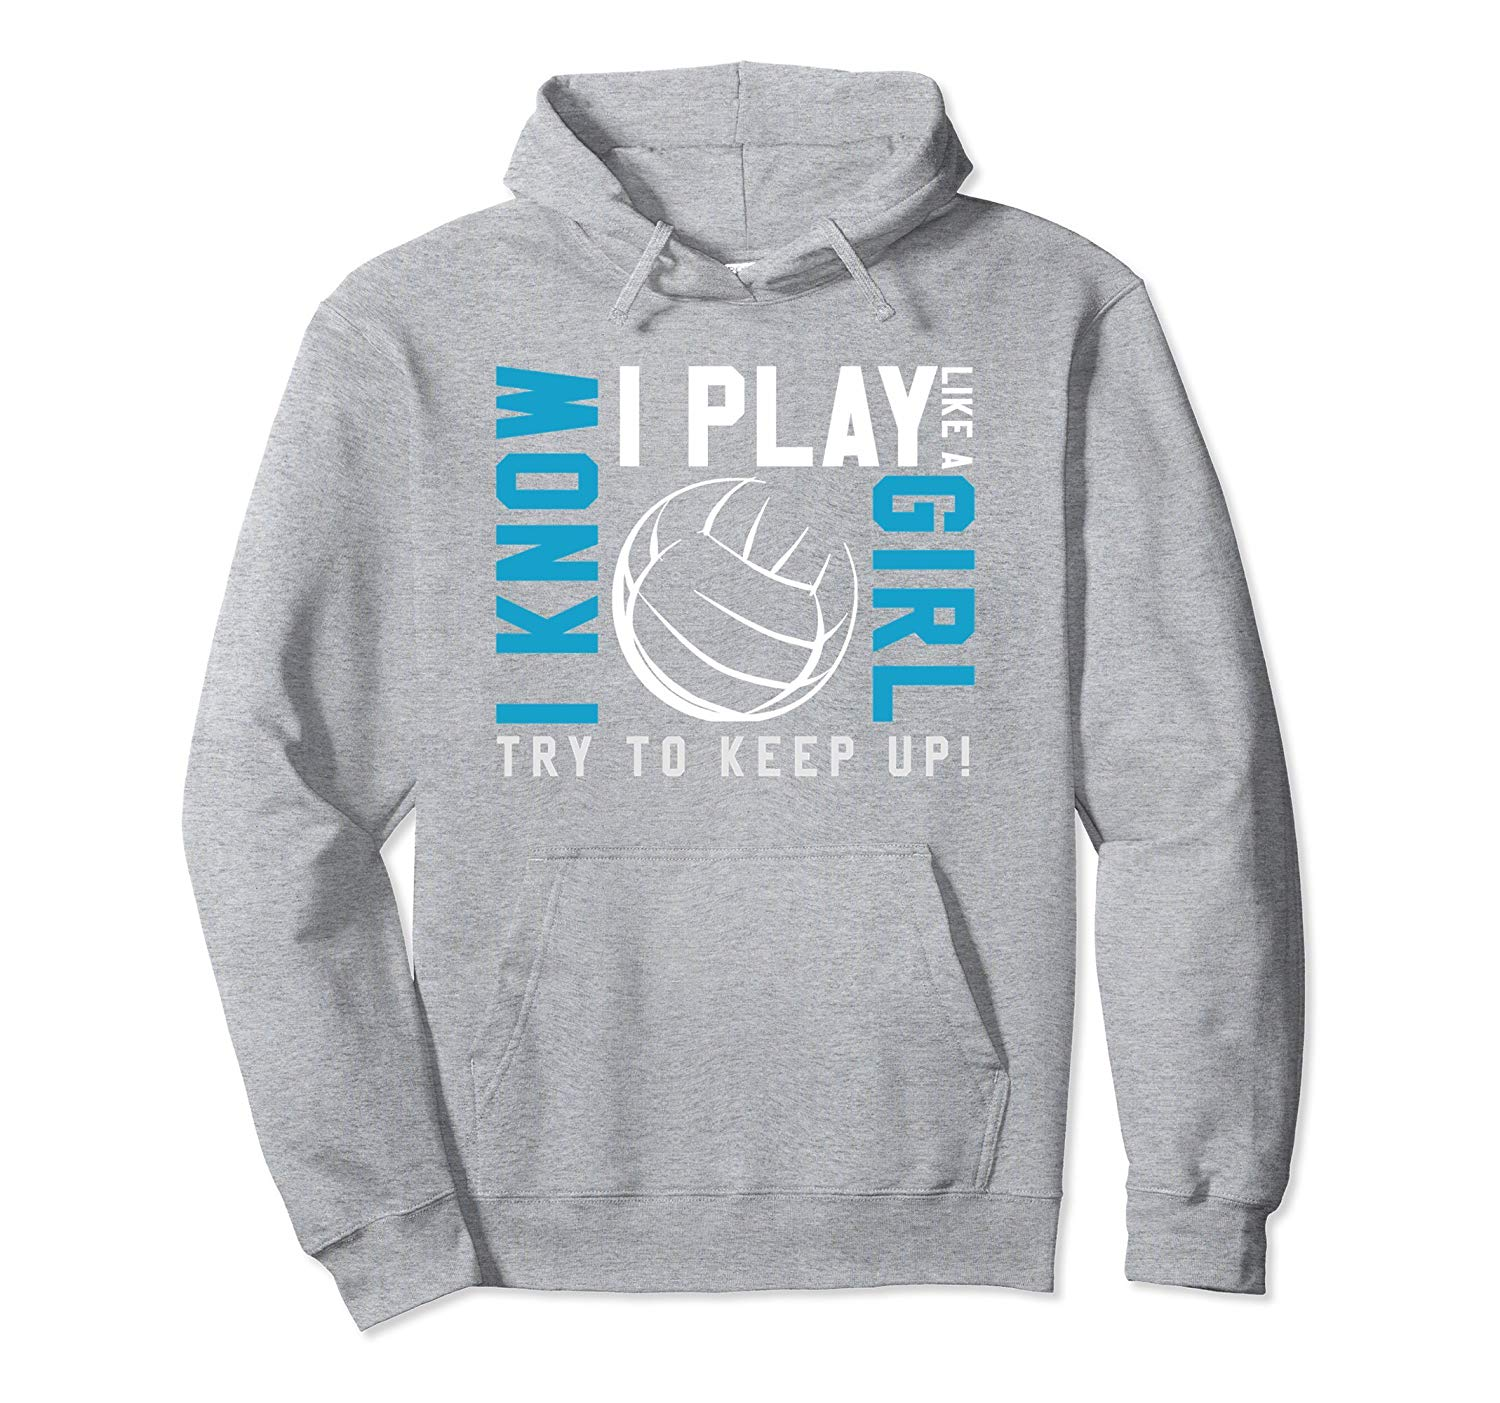 I Play Volleyball Hoodie SR01